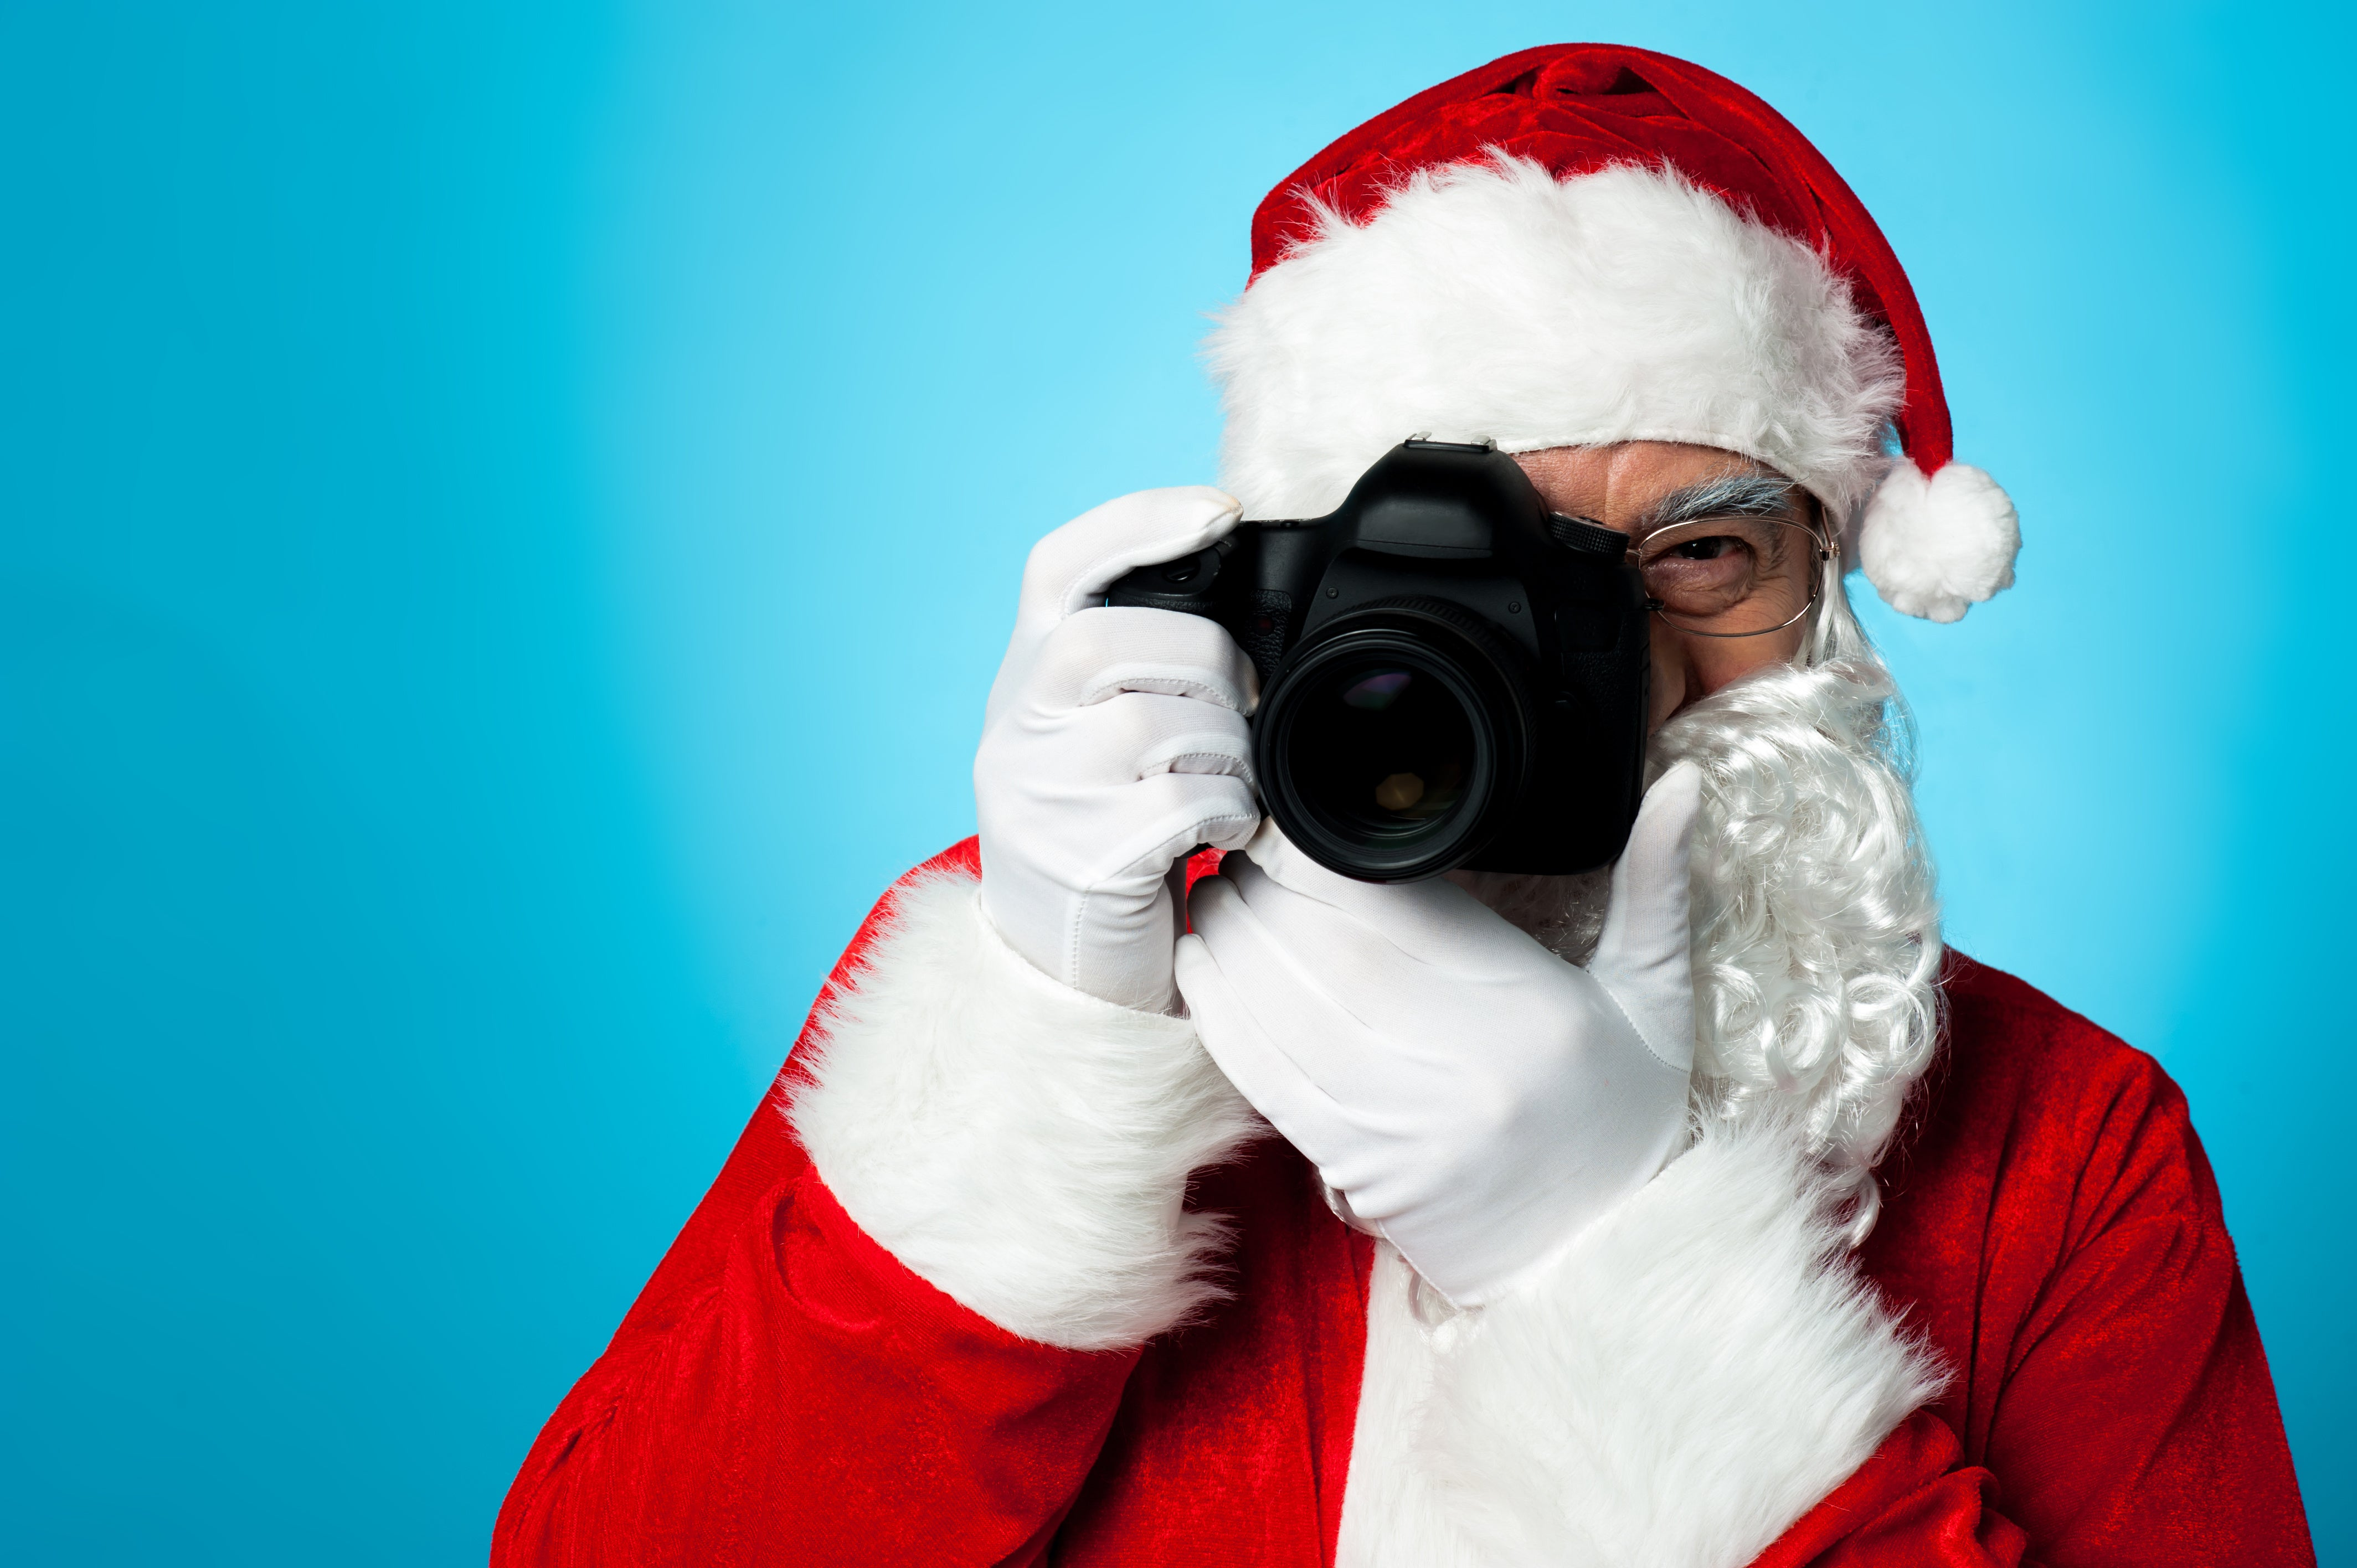 Santa holding a digital camera